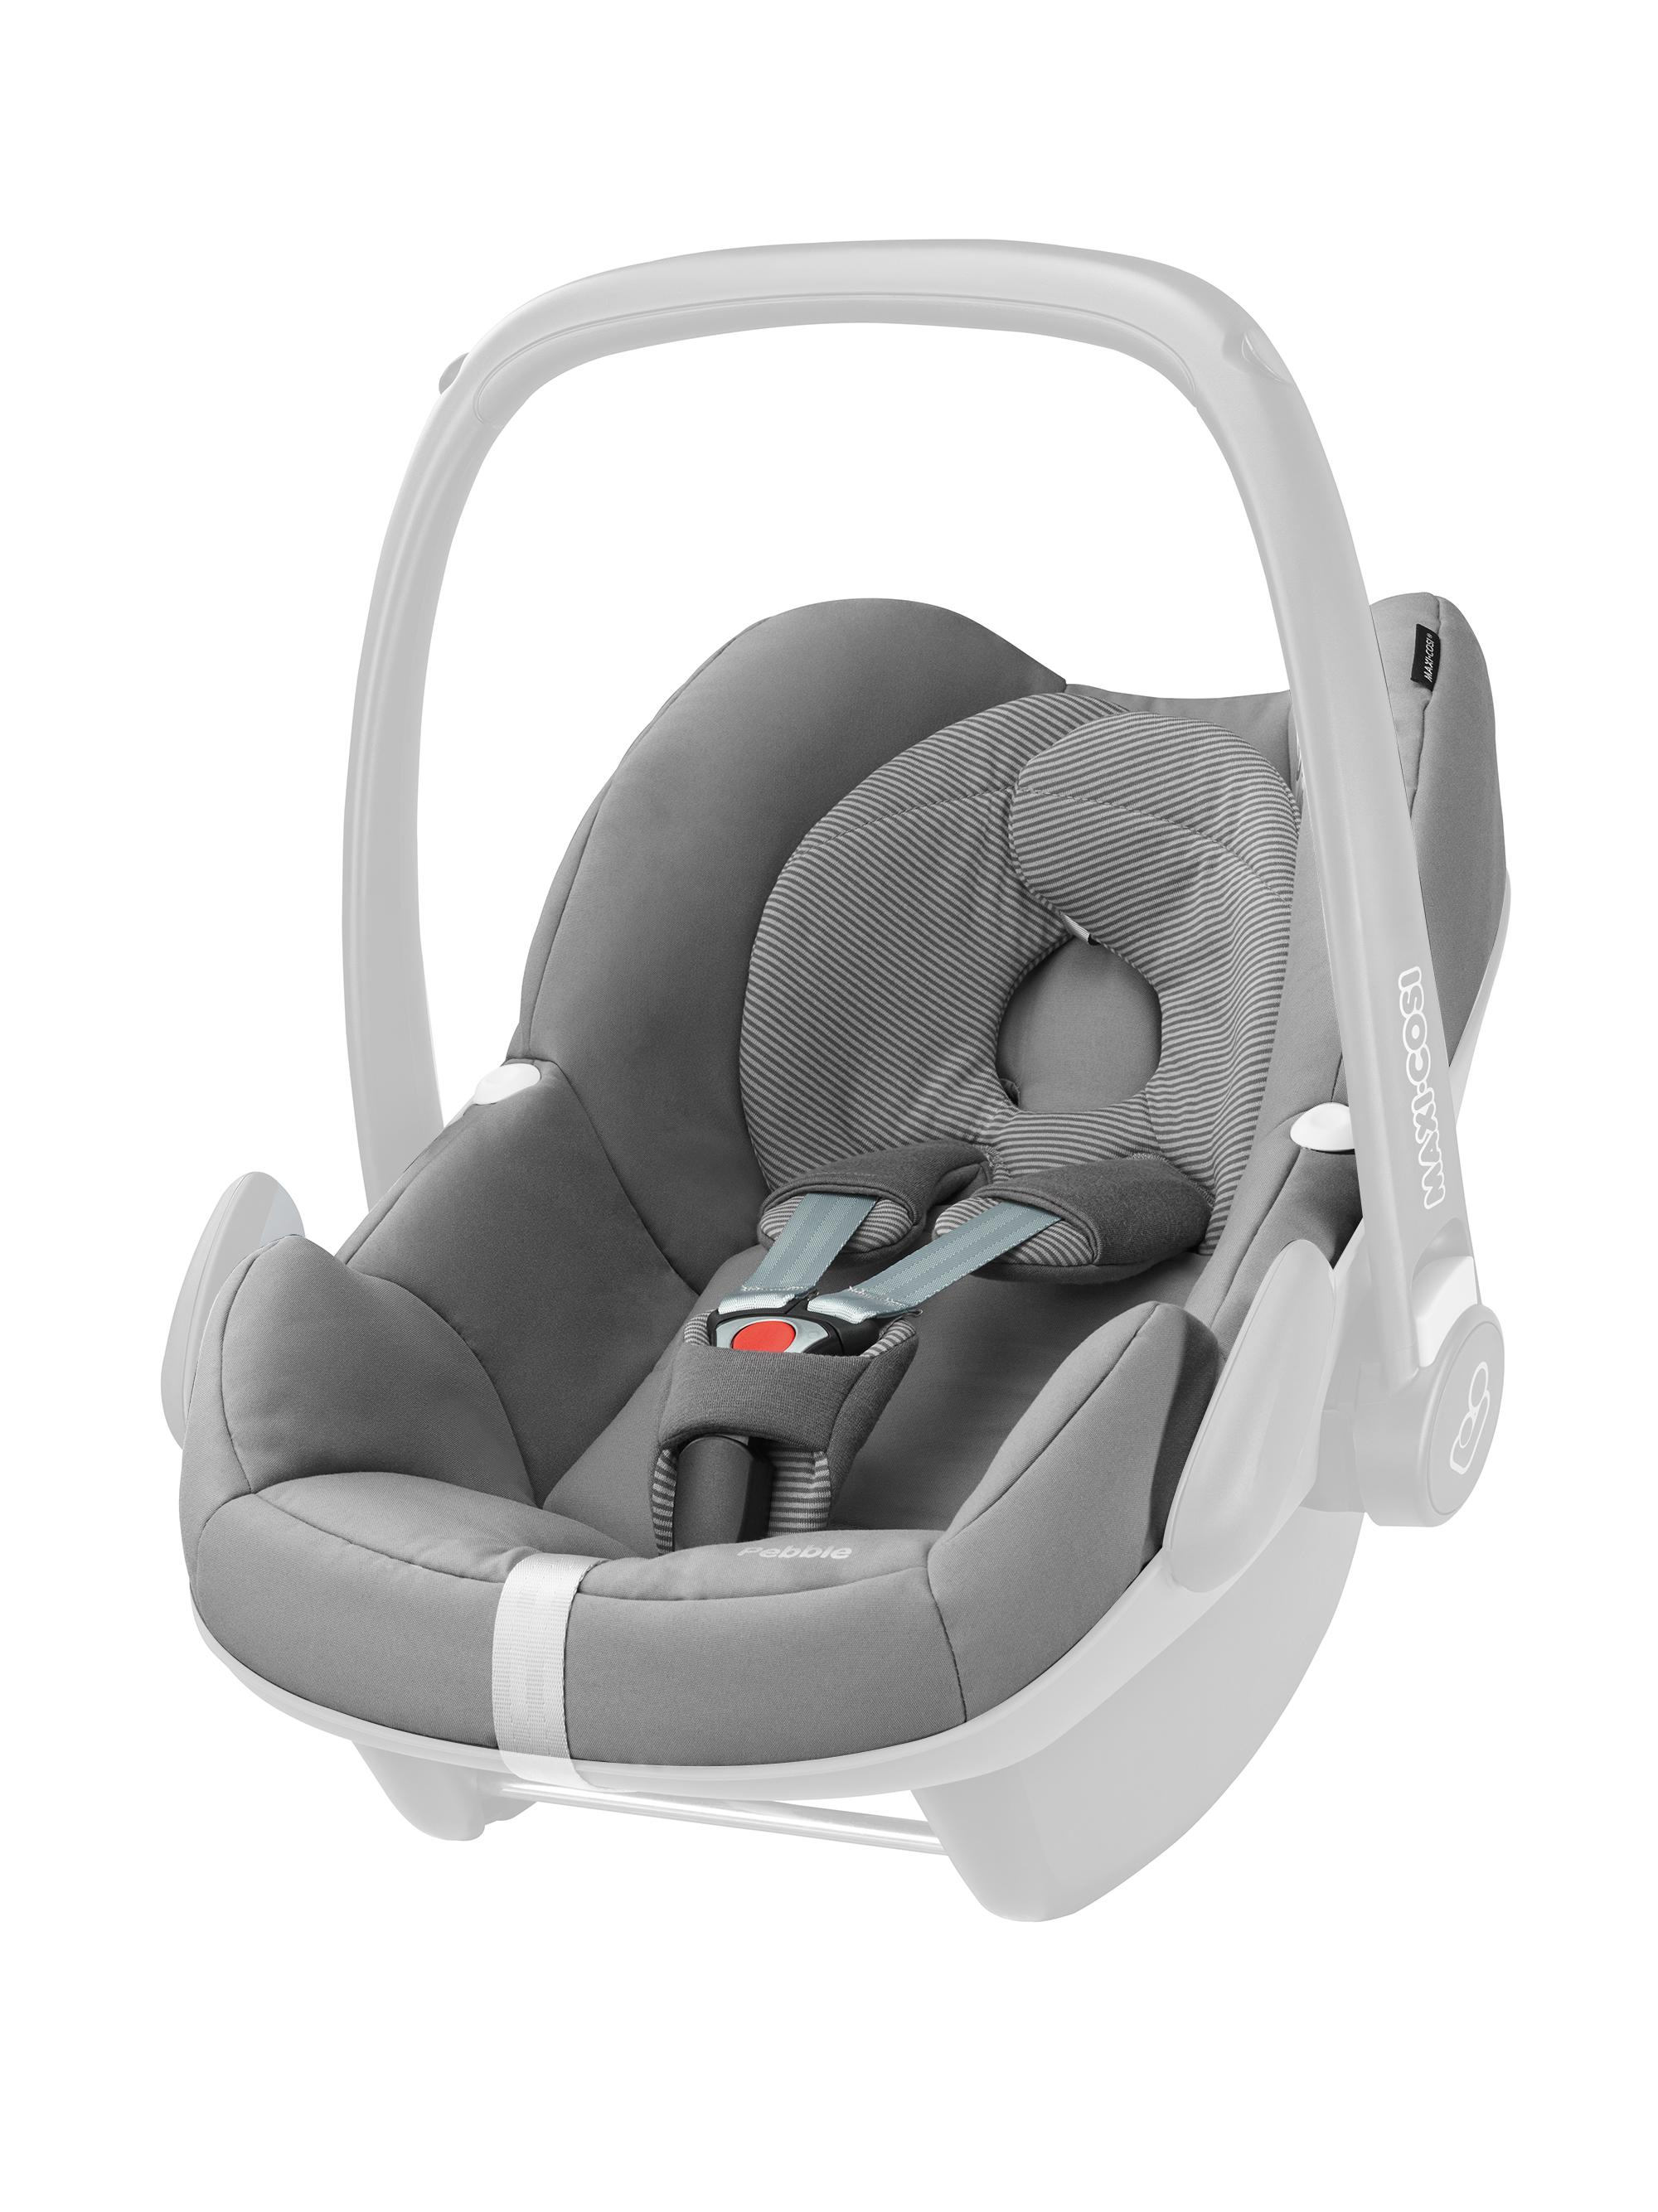 maxi cosi pebble car seat replacement cover concrete grey baby. Black Bedroom Furniture Sets. Home Design Ideas